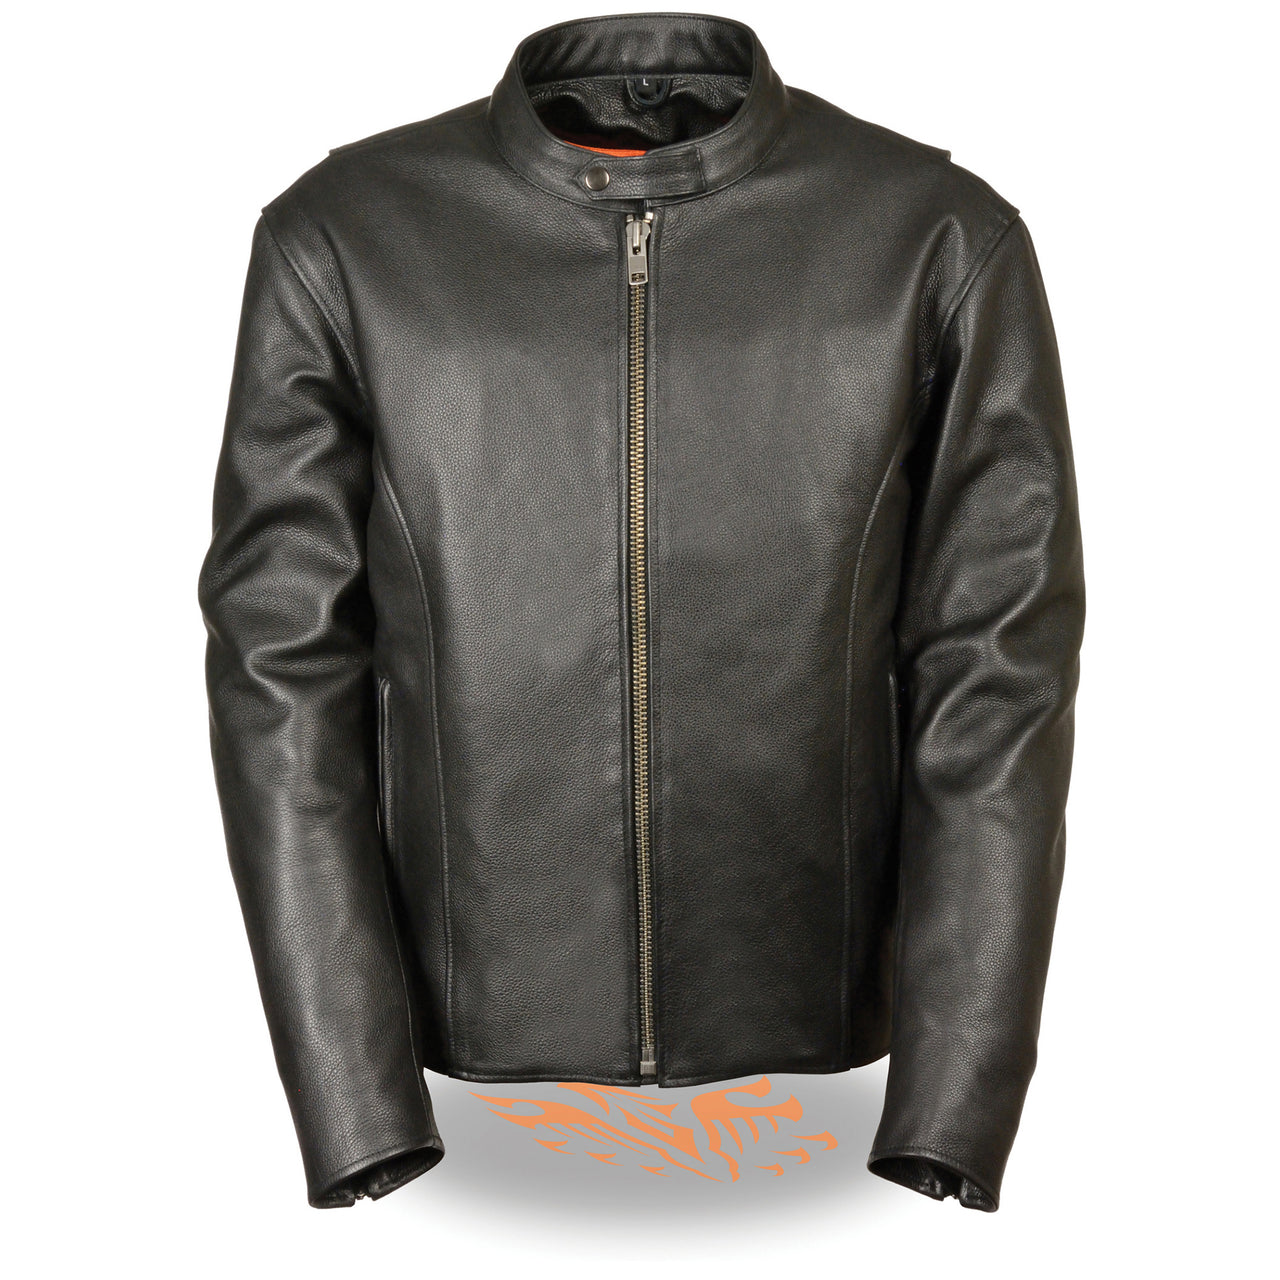 Men's Classic Scooter Jacket w/ Side Zippers - HighwayLeather